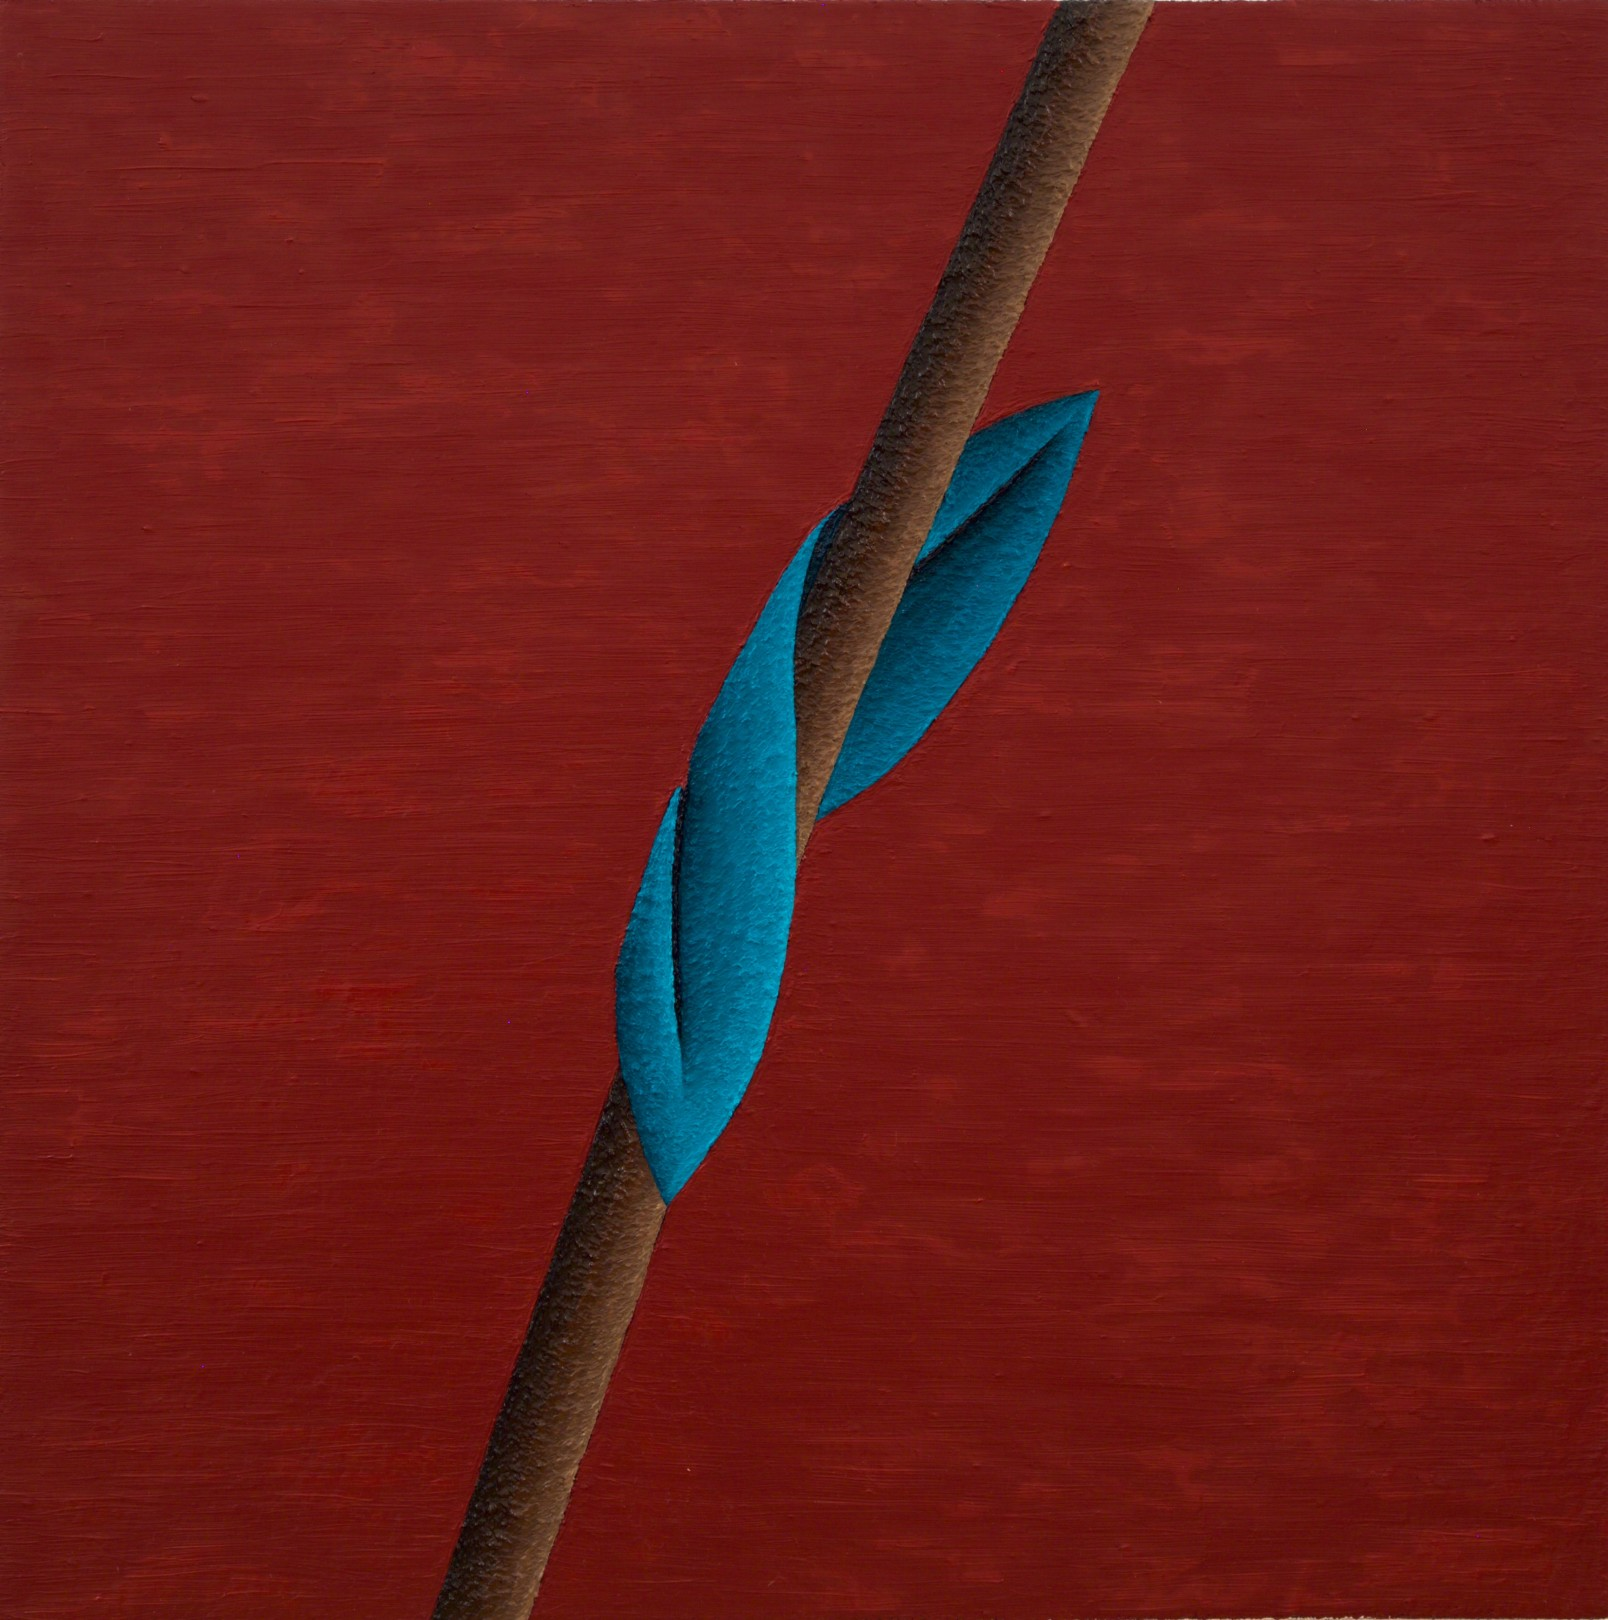 Fold 2, 2018 Oil on linen 76 x 76 cm. / 30 x 30 in.